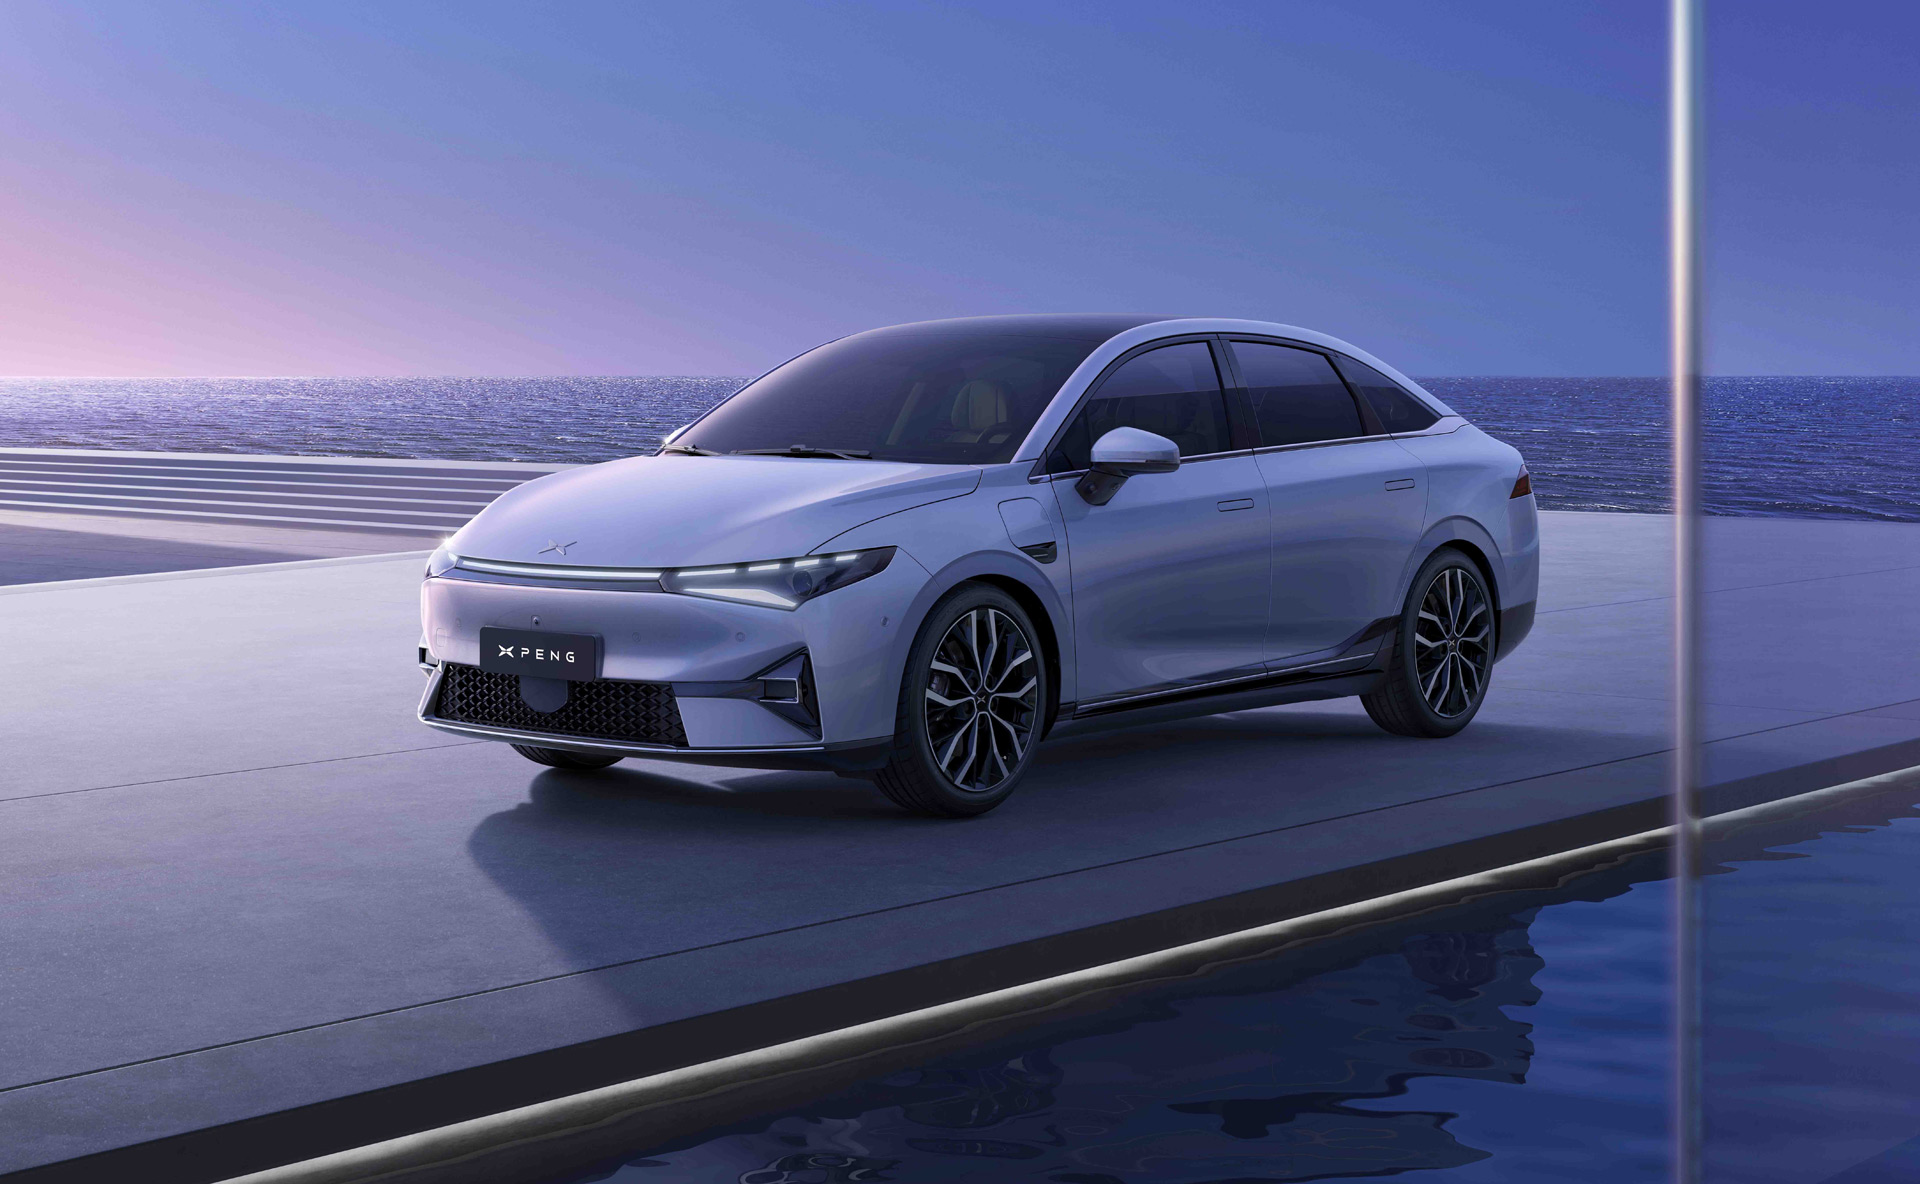 2022 Xpeng P5 revealed as first production car with built-in lidar